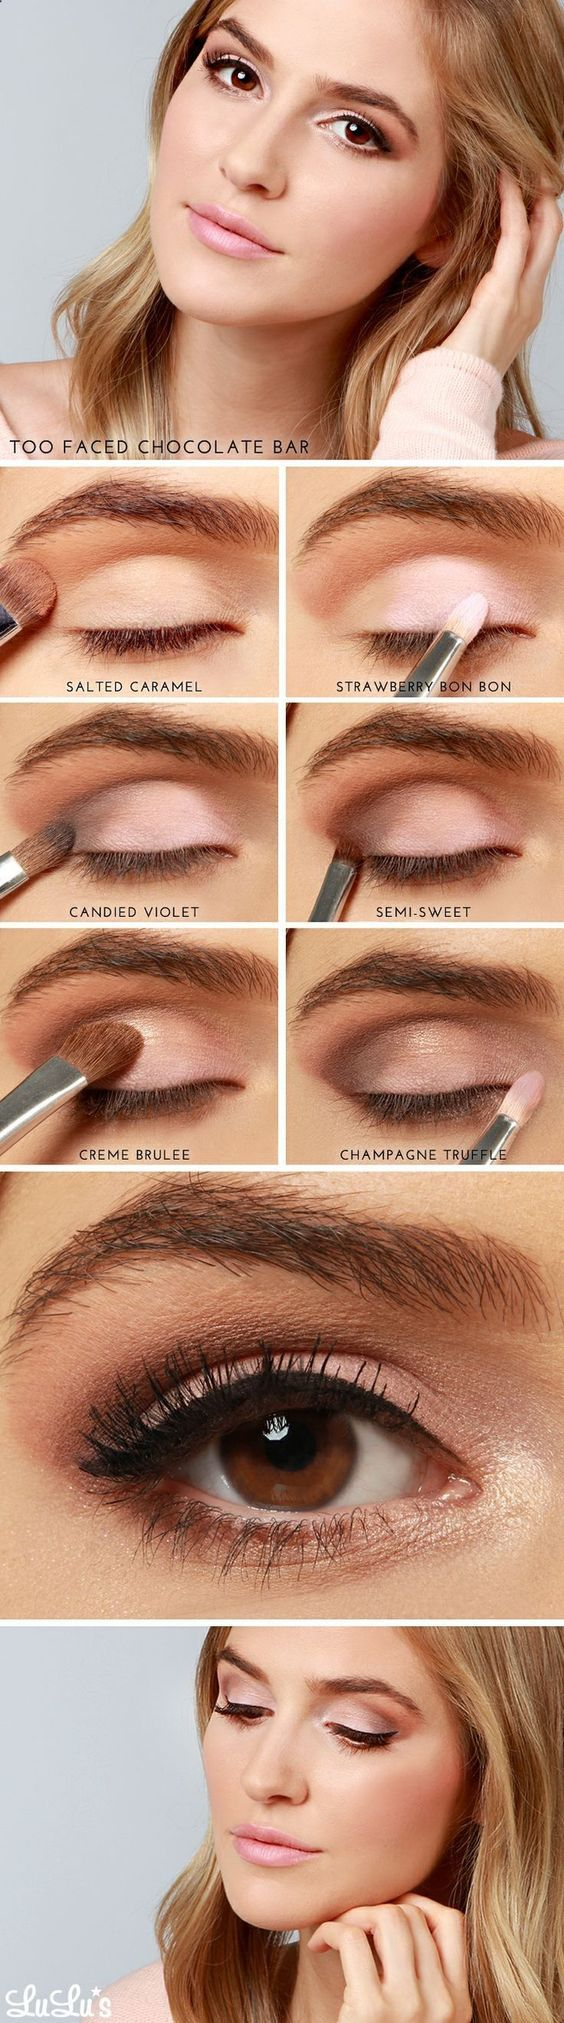 Chocolate Bar Eye Shadow / eyes makeup tutorials |... #coupon code nicesup123 gets 25% off at Provestra.com Skinception.com: